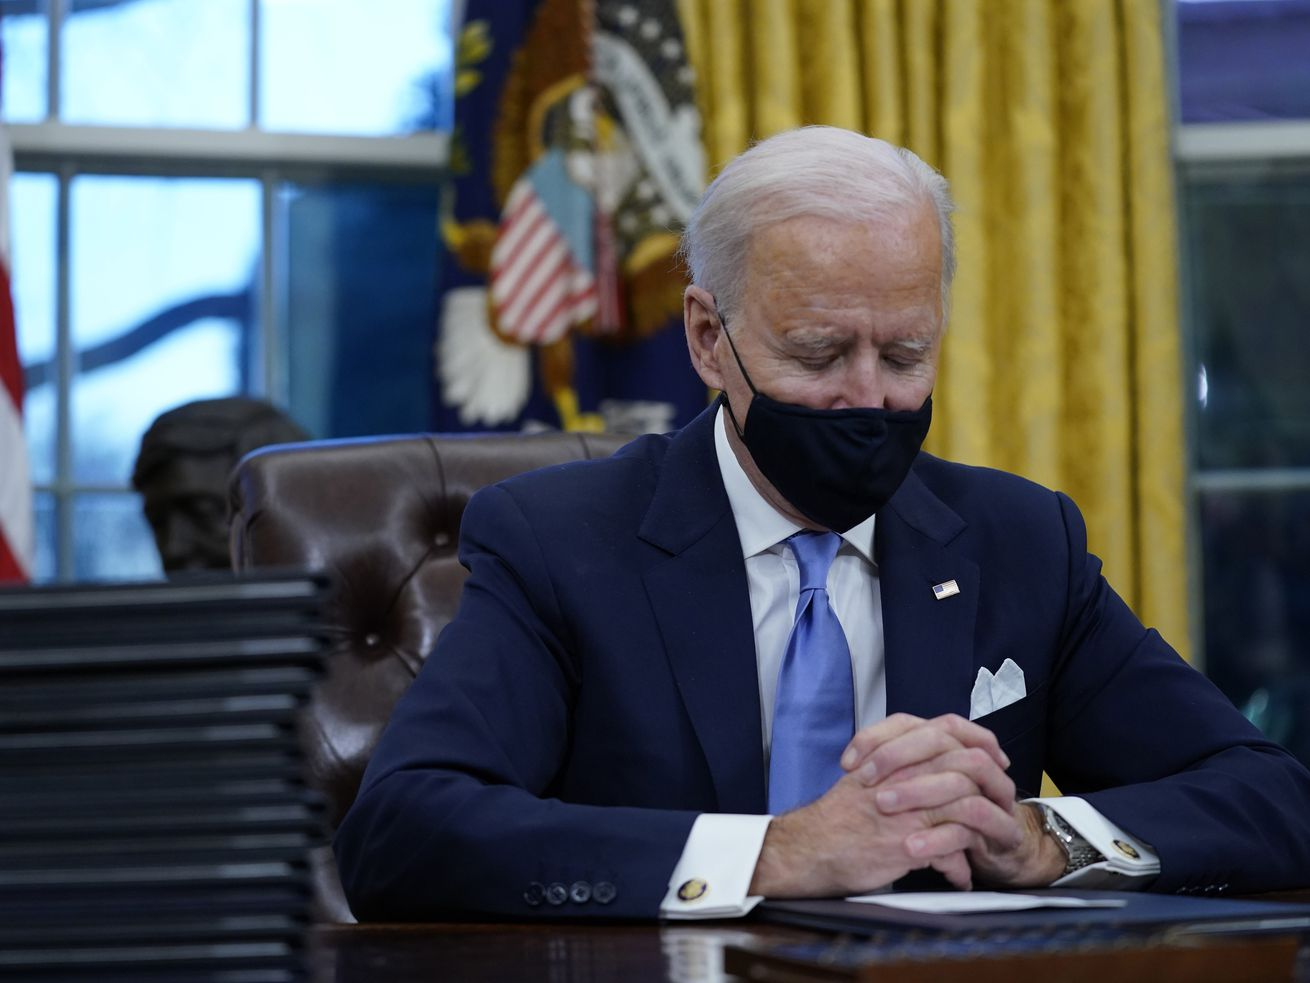 Joe Biden's climate steps could have a big impact on energy companies